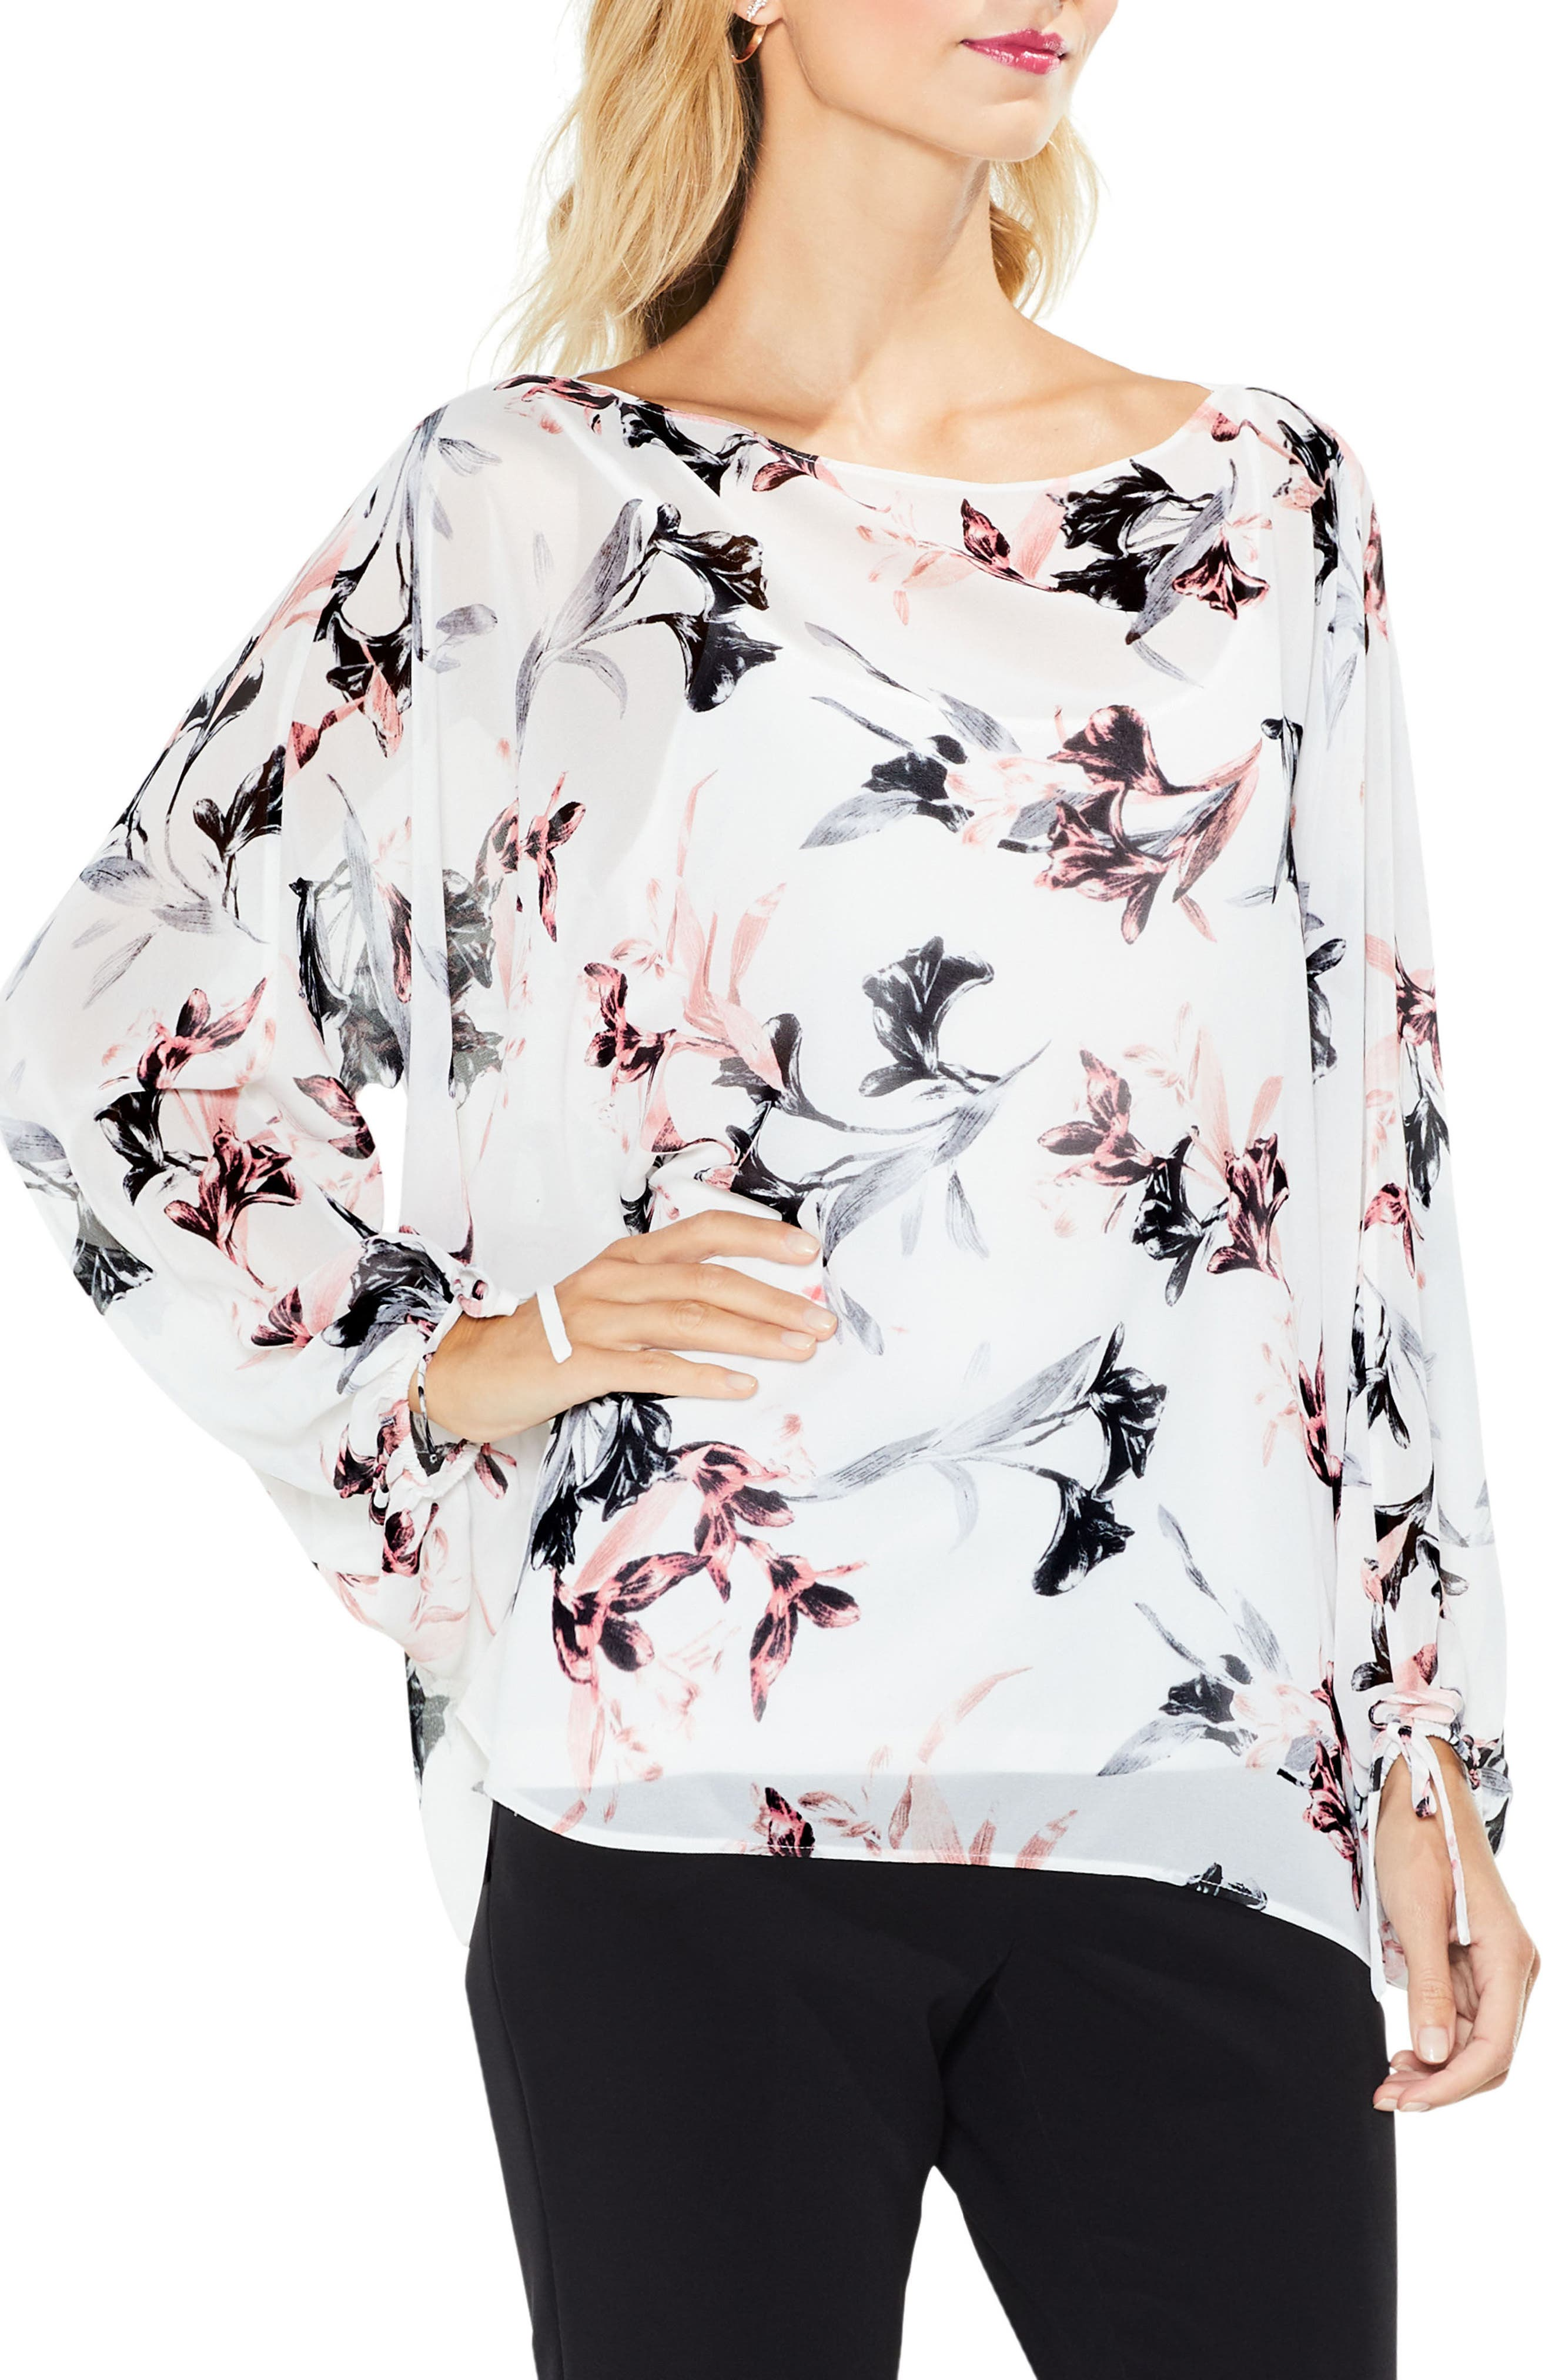 Alternate Image 1 Selected - Vince Camuto Lily Melody Blosuson Sleeve Top